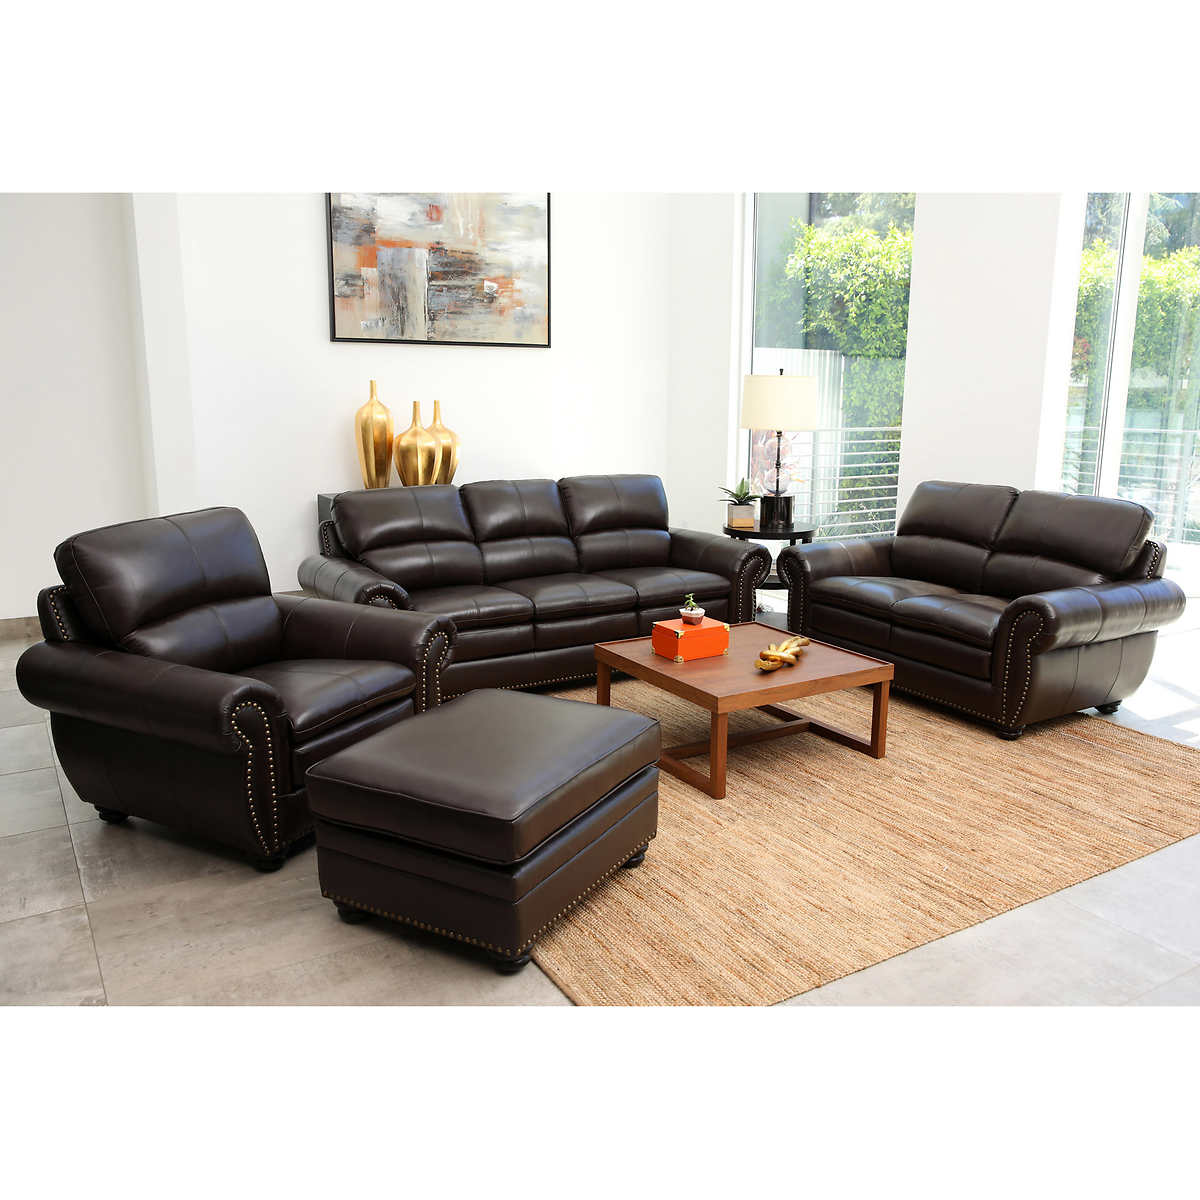 Kingsbury 4 Piece Leather Set 1